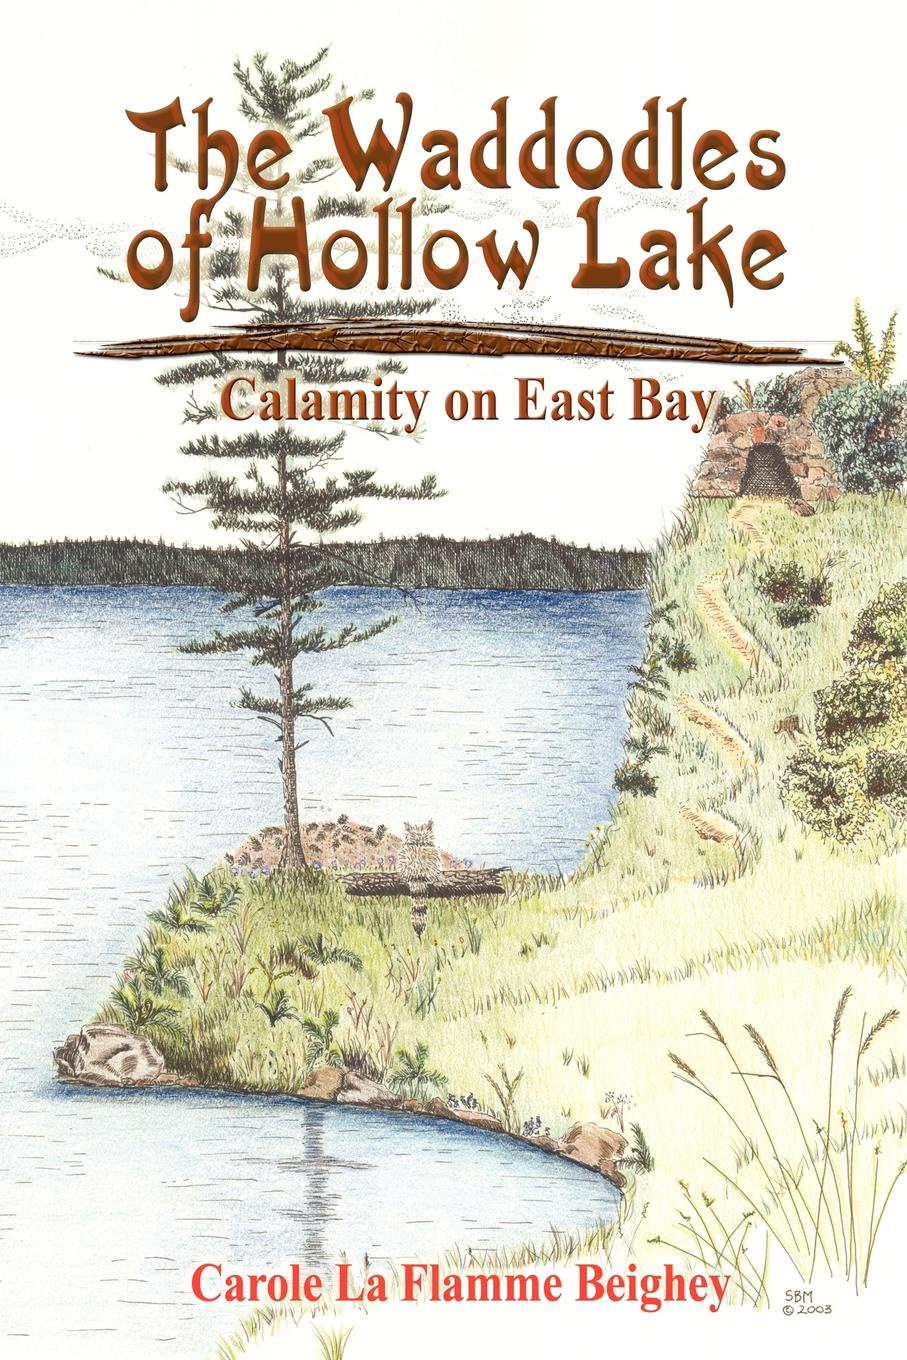 Carole La Flamme Beighey The Waddodles of Hollow Lake. Calamity on East Bay